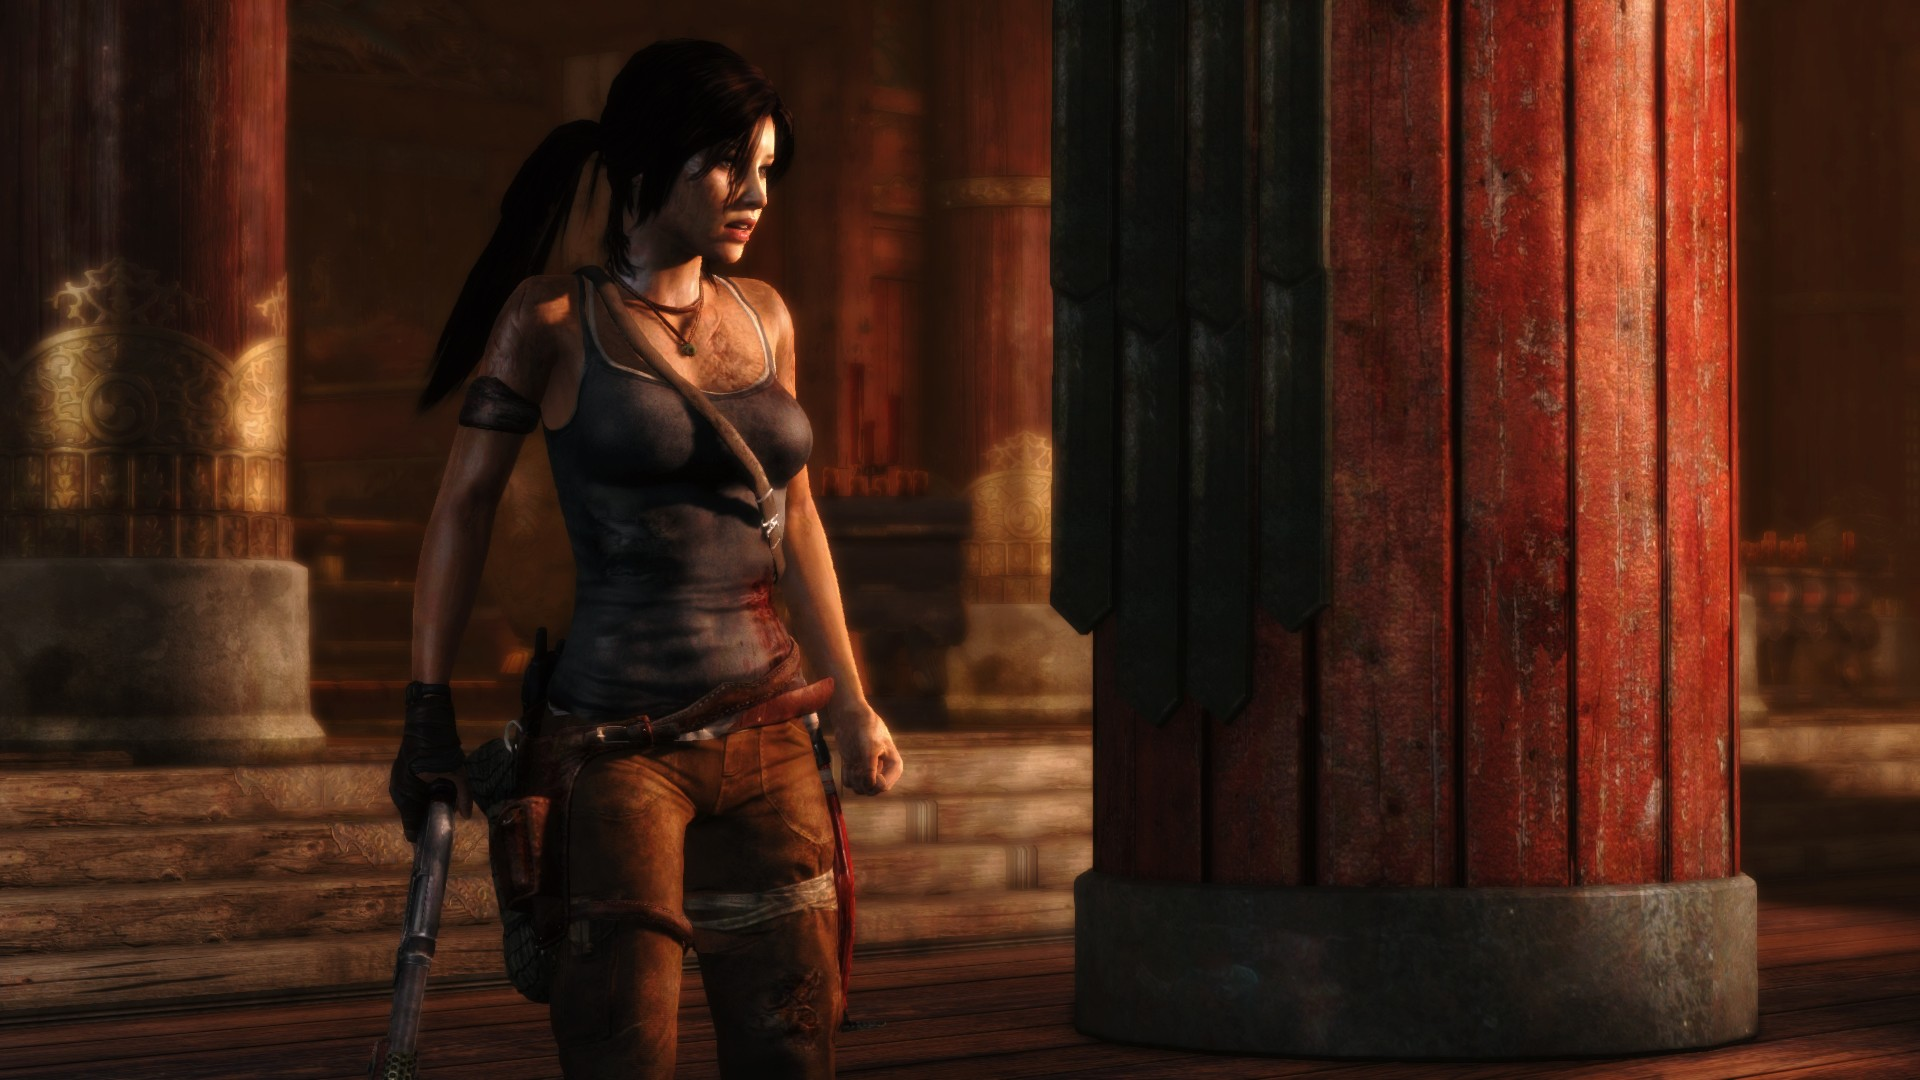 Tomb Raider 2013 Wallpaper: Tomb-raider-2013-gameplay-wallpaper.jpg